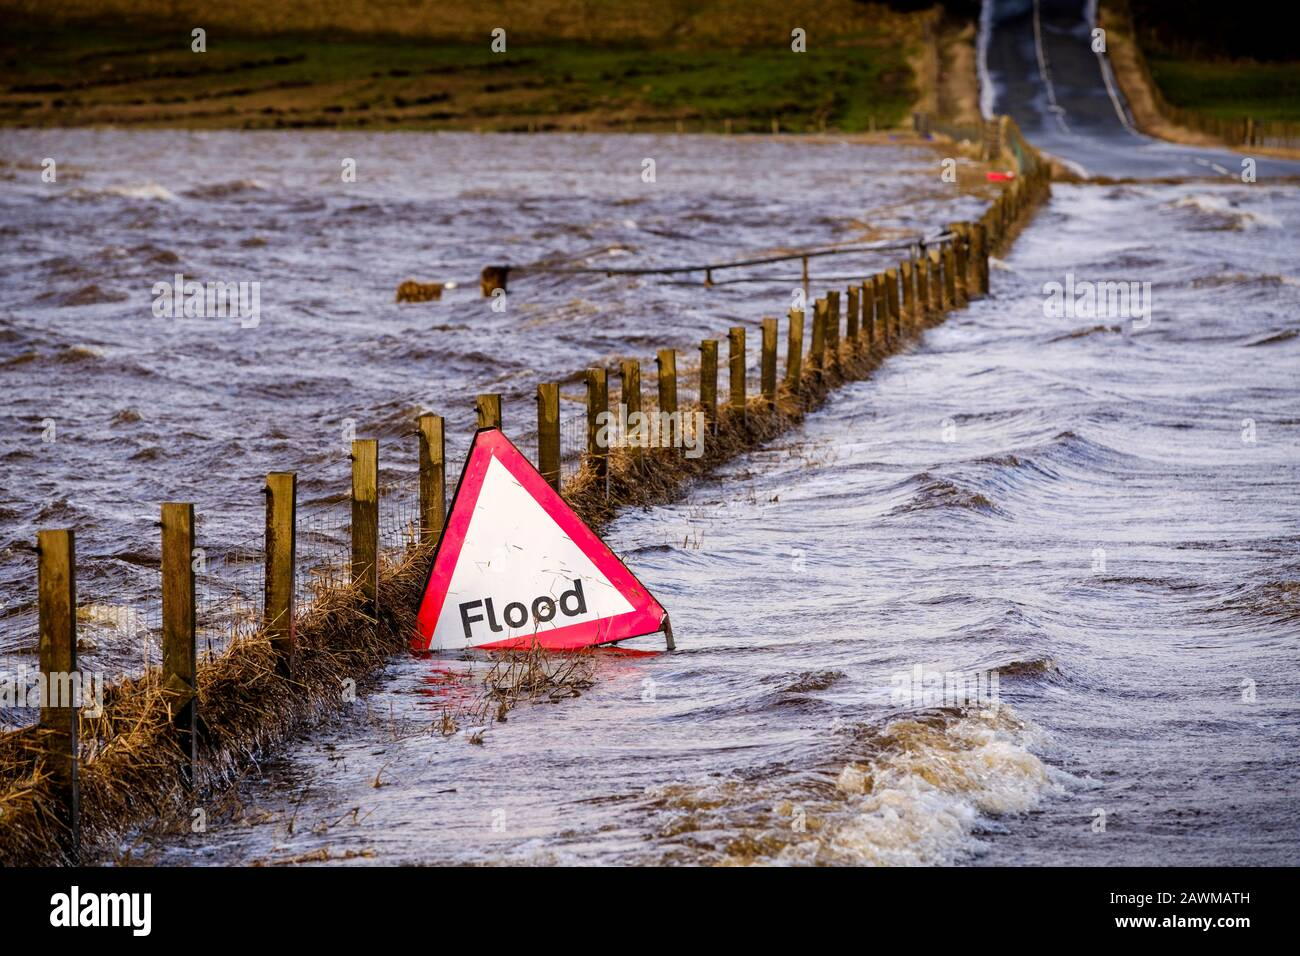 Storm Ciara causes the River Medwin (a tributary of the River Clyde) to burst its banks in South Lanarkshire, Scotland causing wide spread flooding . Stock Photo